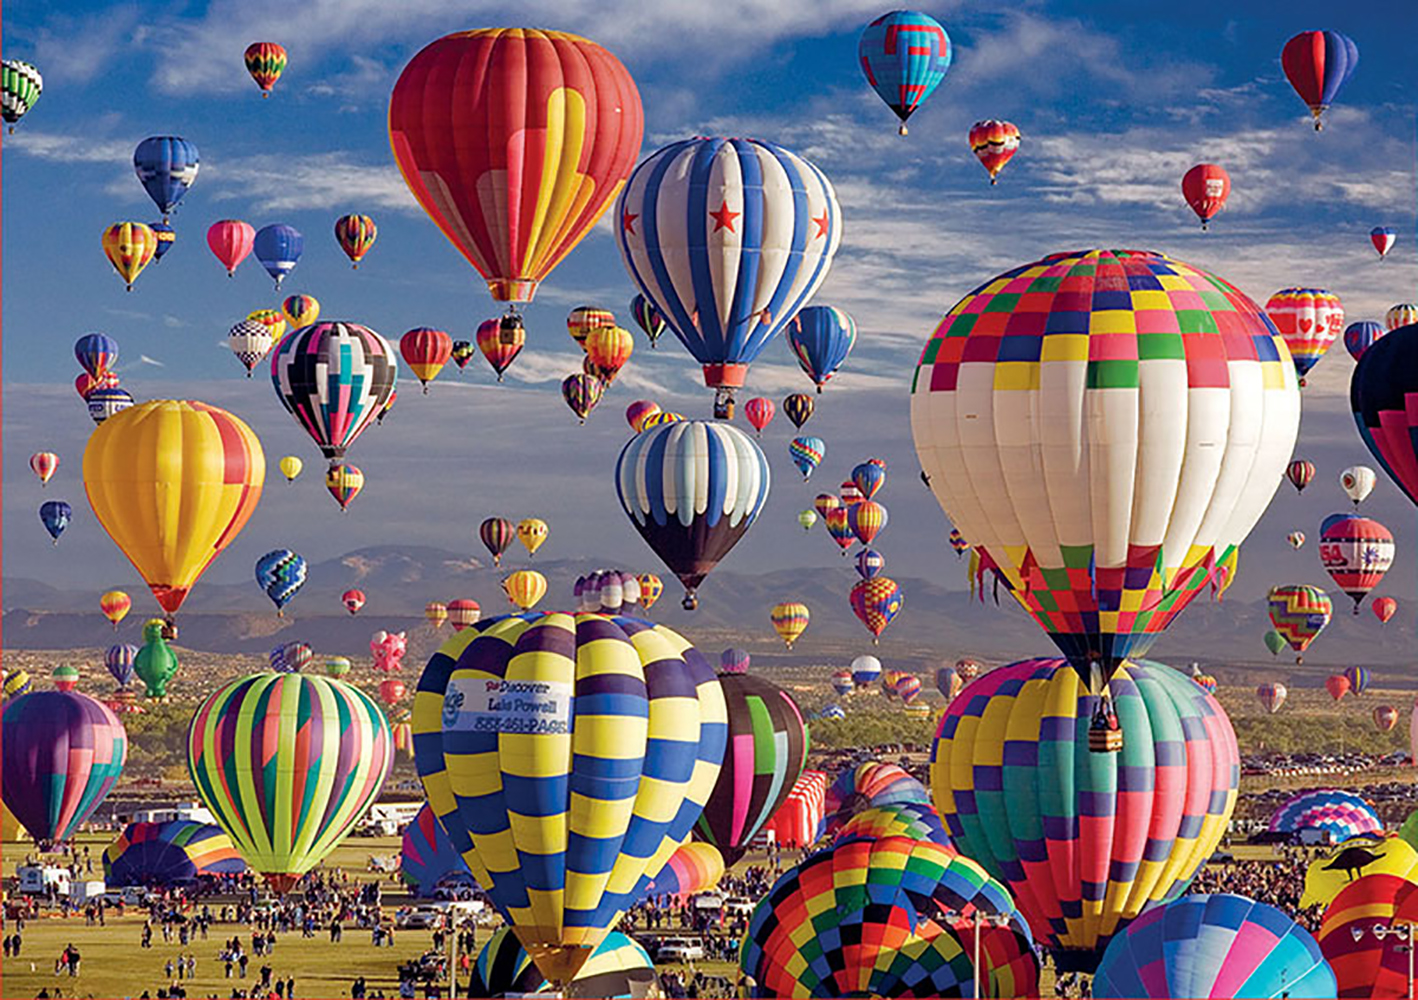 1500 pieces puzzle - Hot Air Balloons